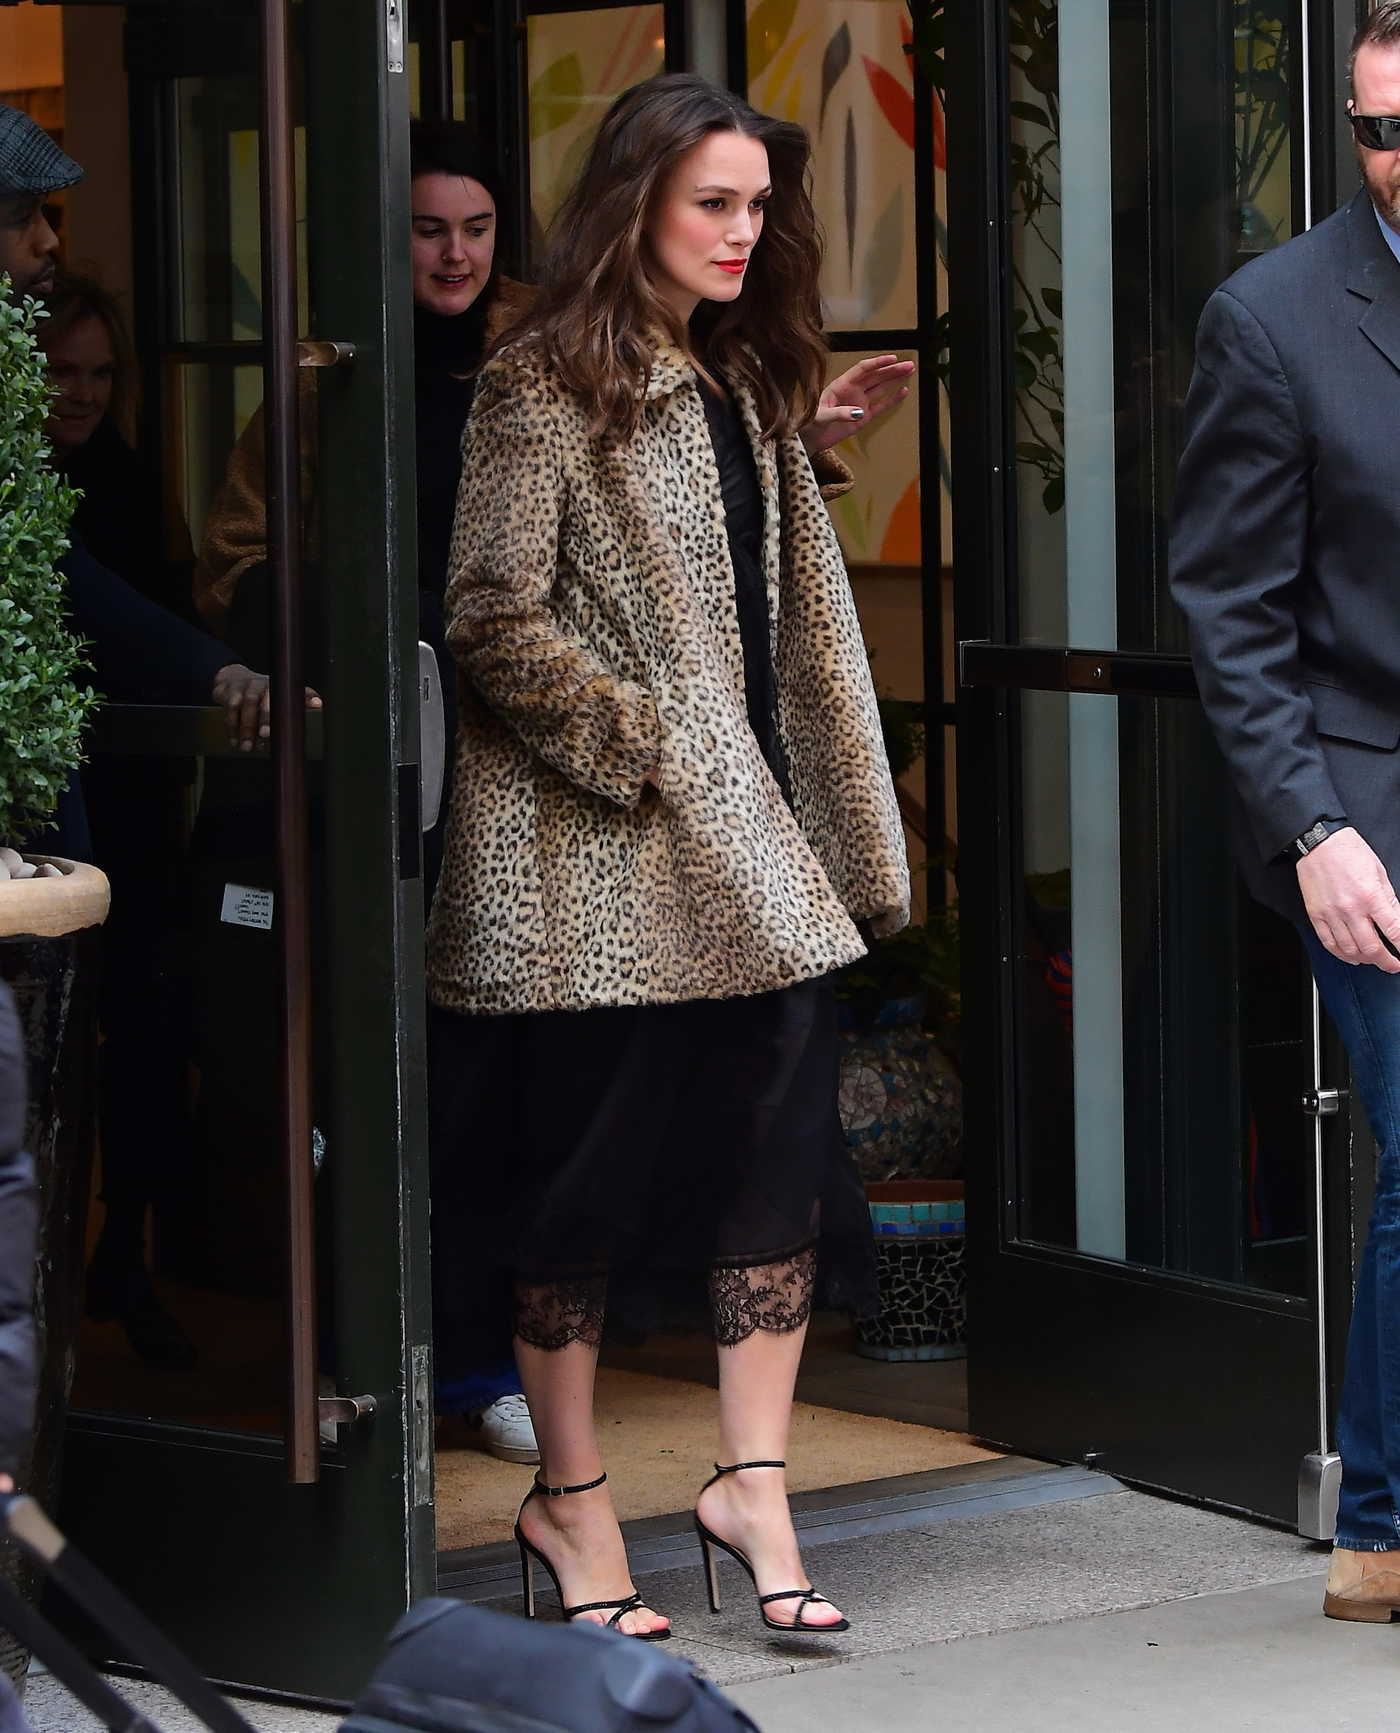 Keira Knightley in a Short Leopard Print Fur Coat Leaves Her Hotel in New York City 03/12/2019